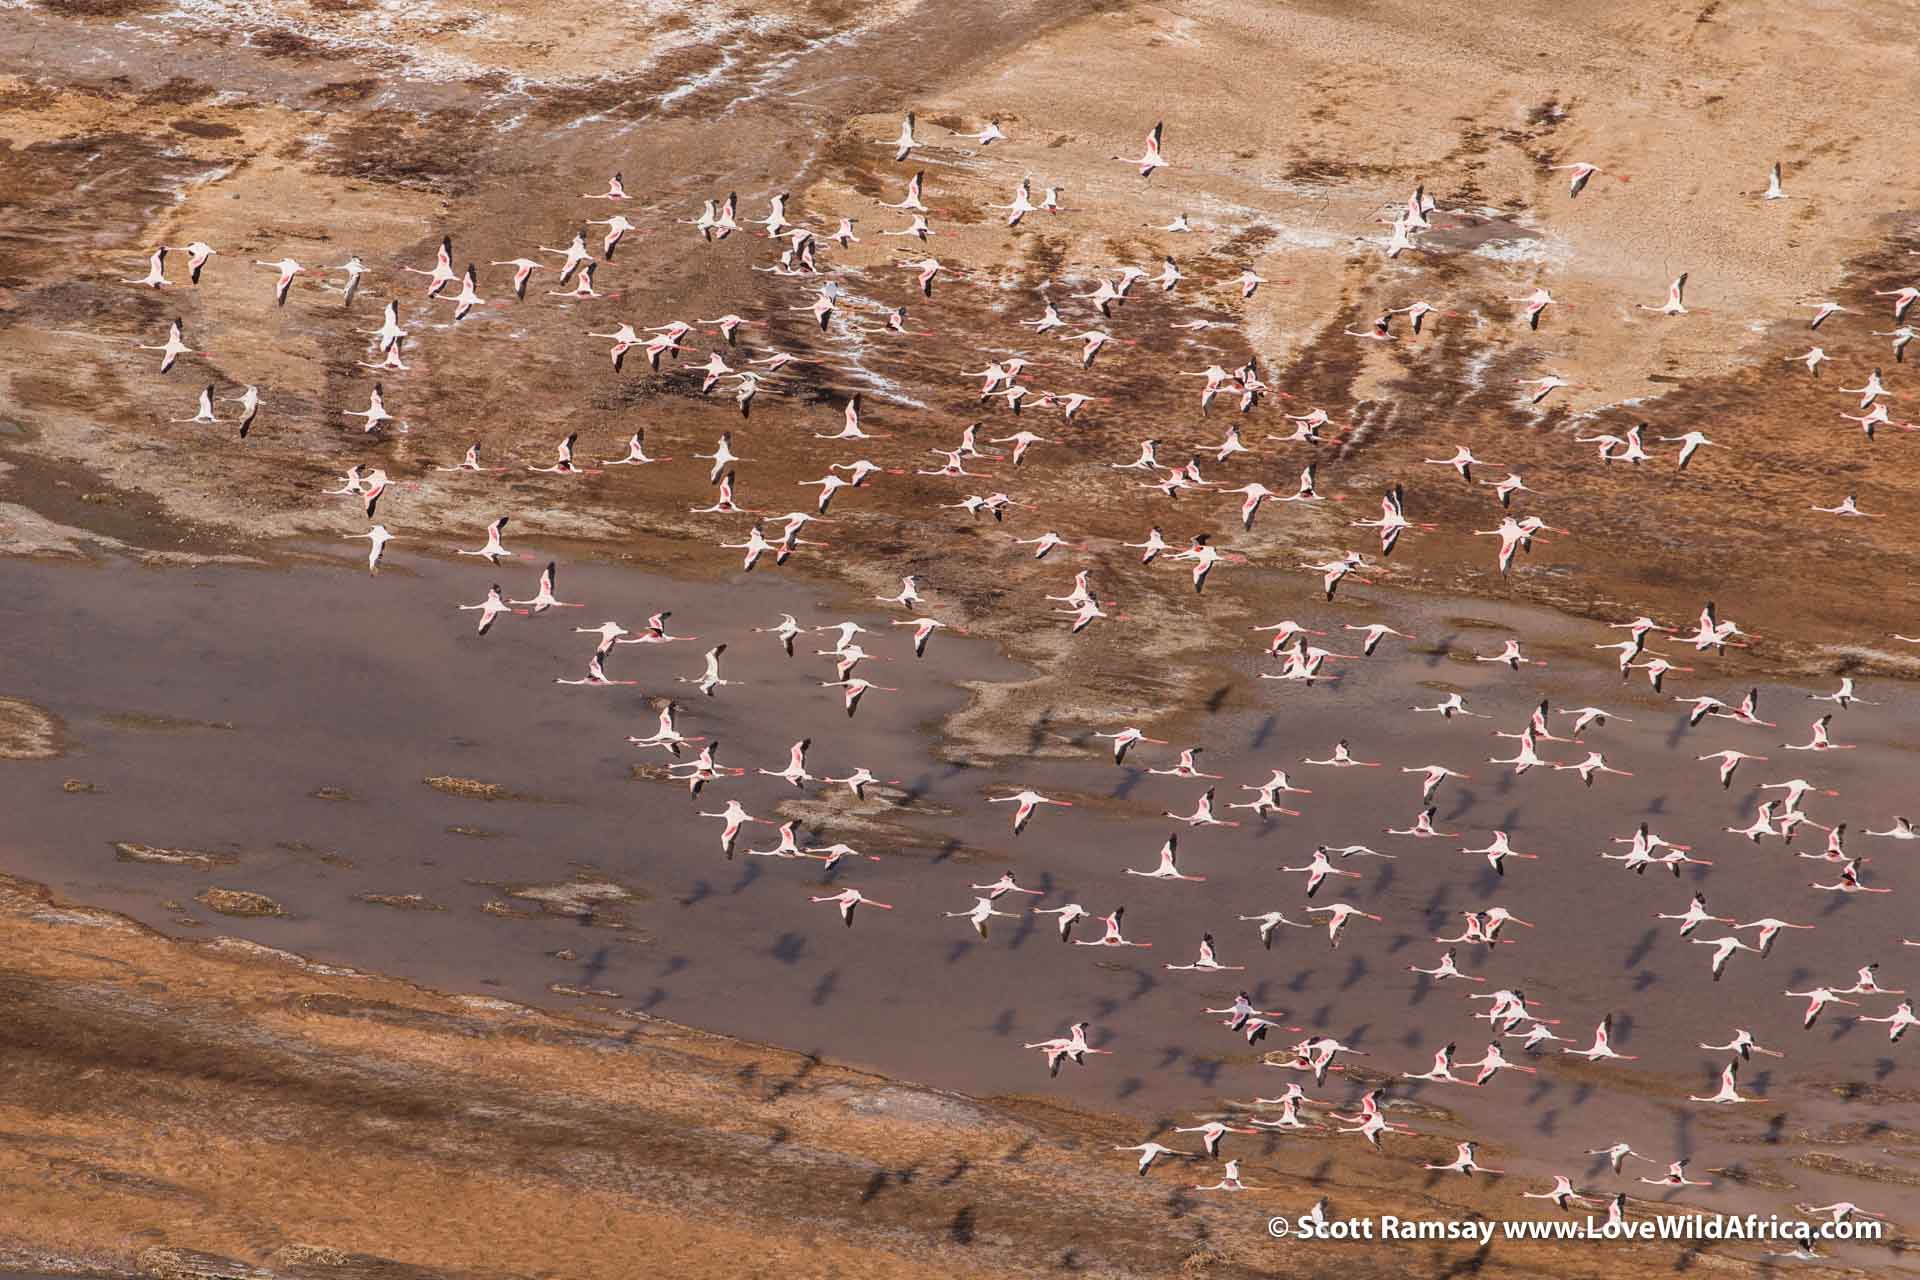 Flying over the southern end of Lake Logipi, we came across our first flamingos...the contrast between these beautiful birds and the harsh landscape is bizarre. But what a sight!